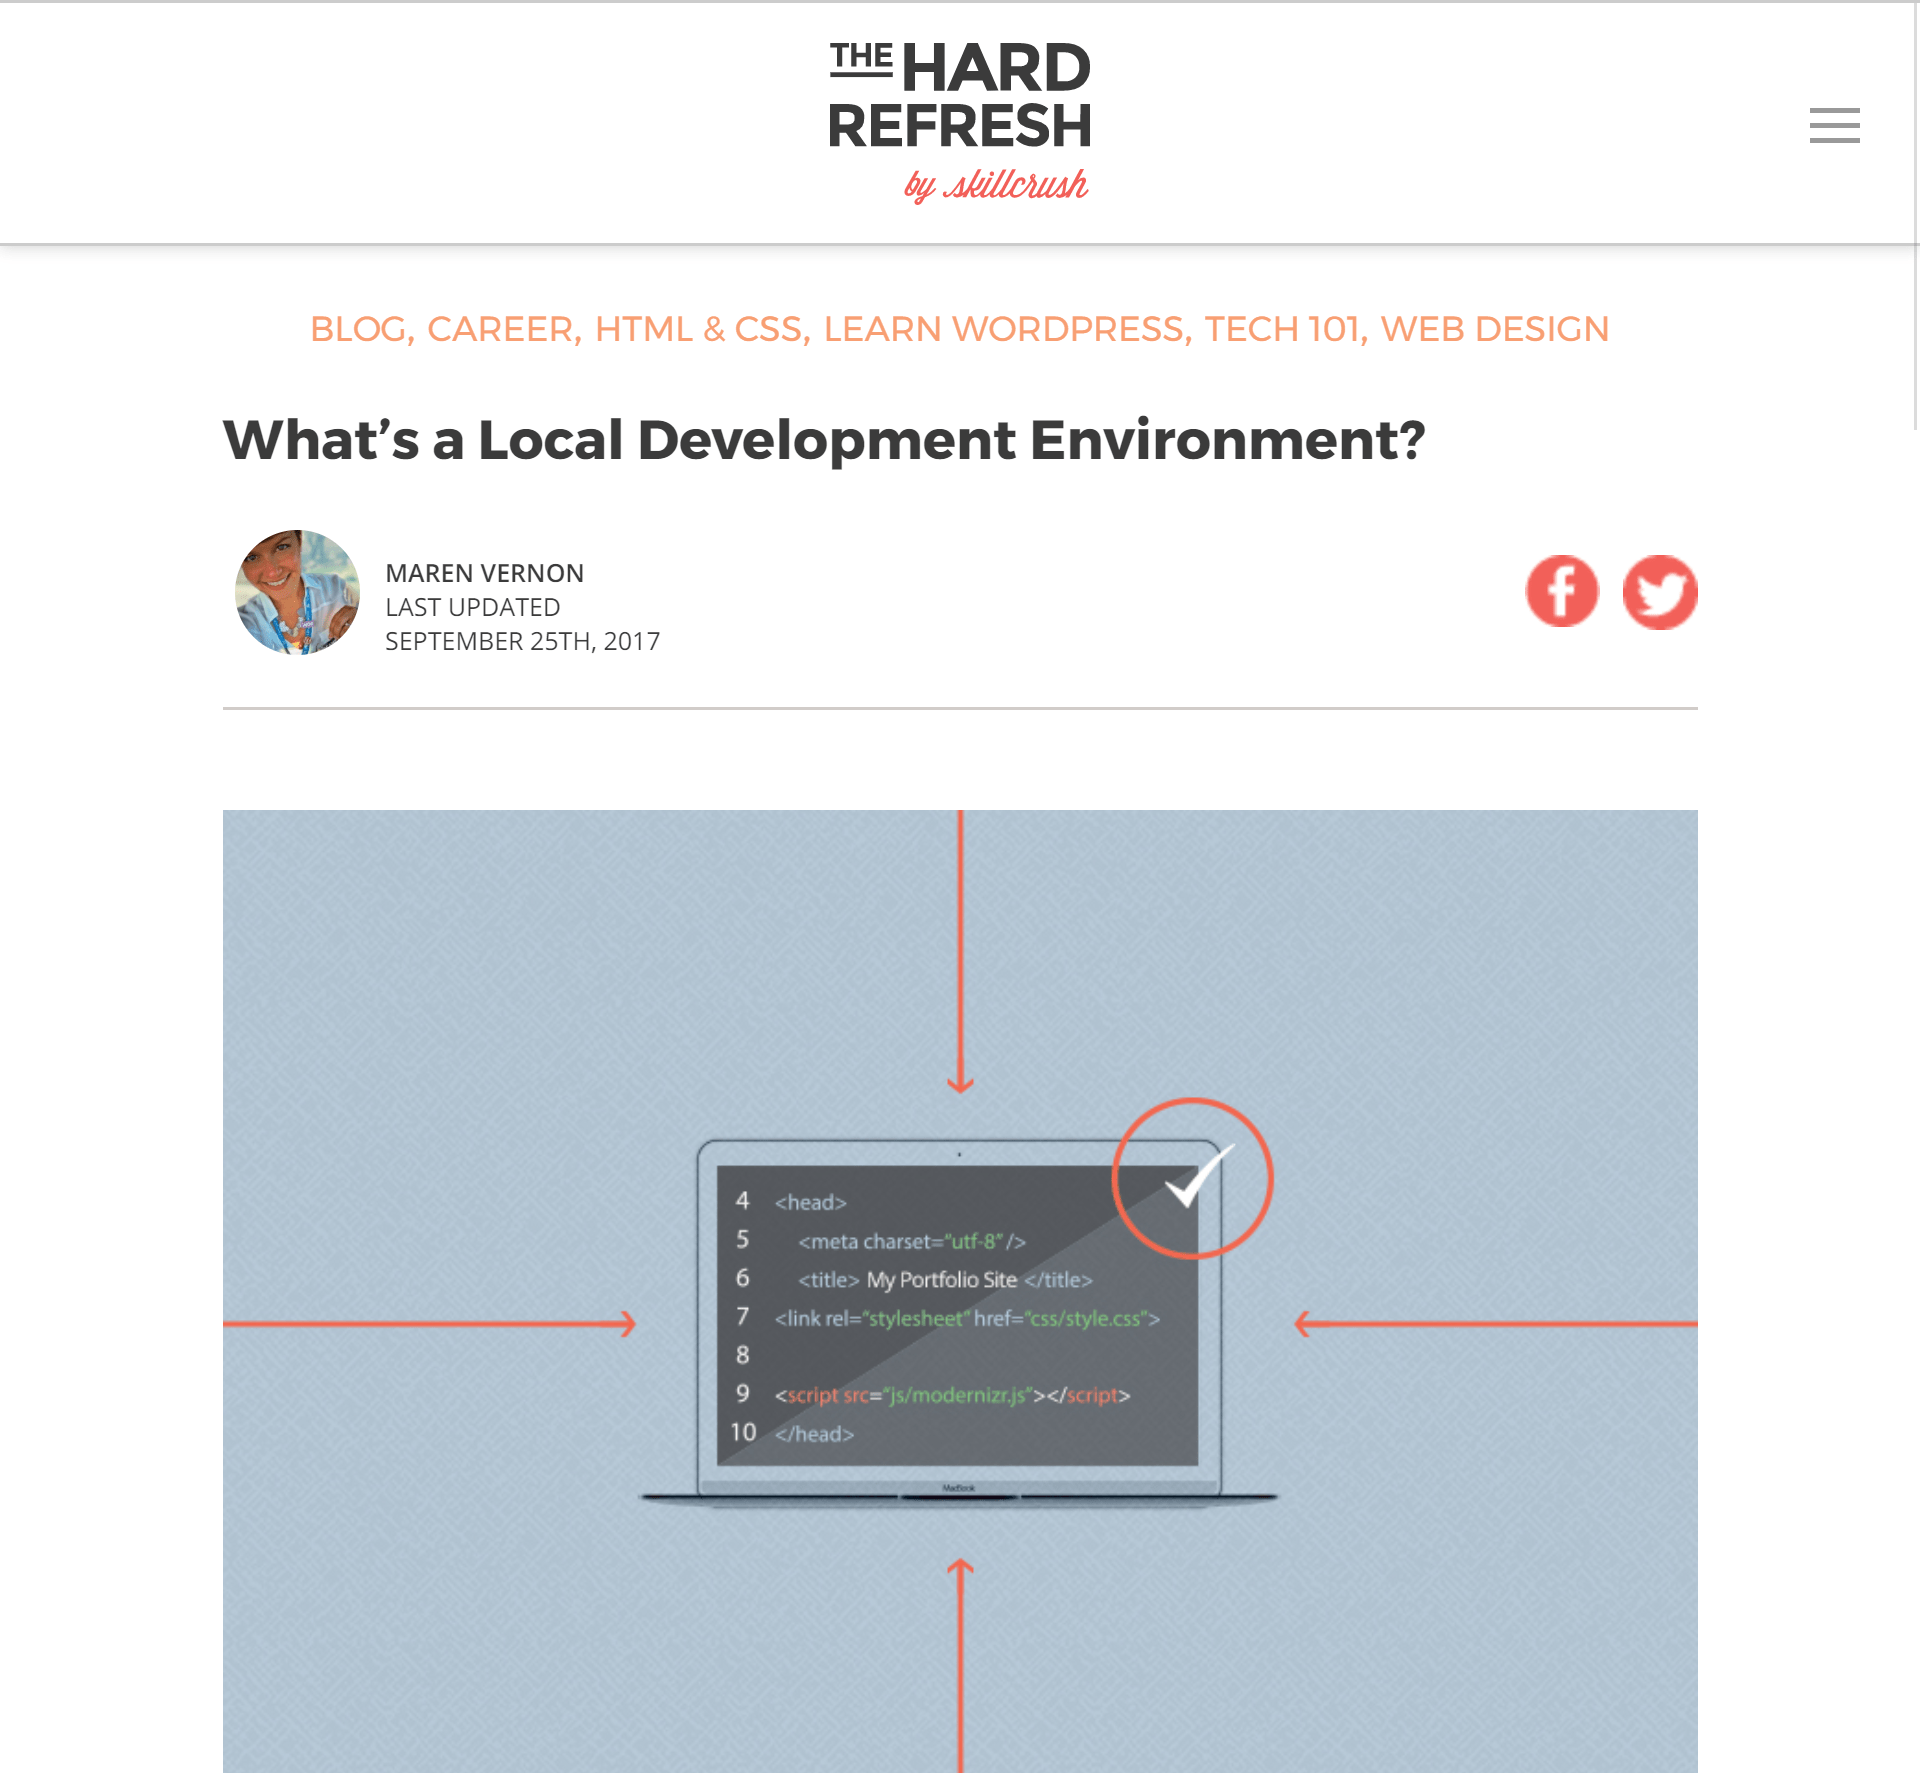 What's a Local Development Environment?